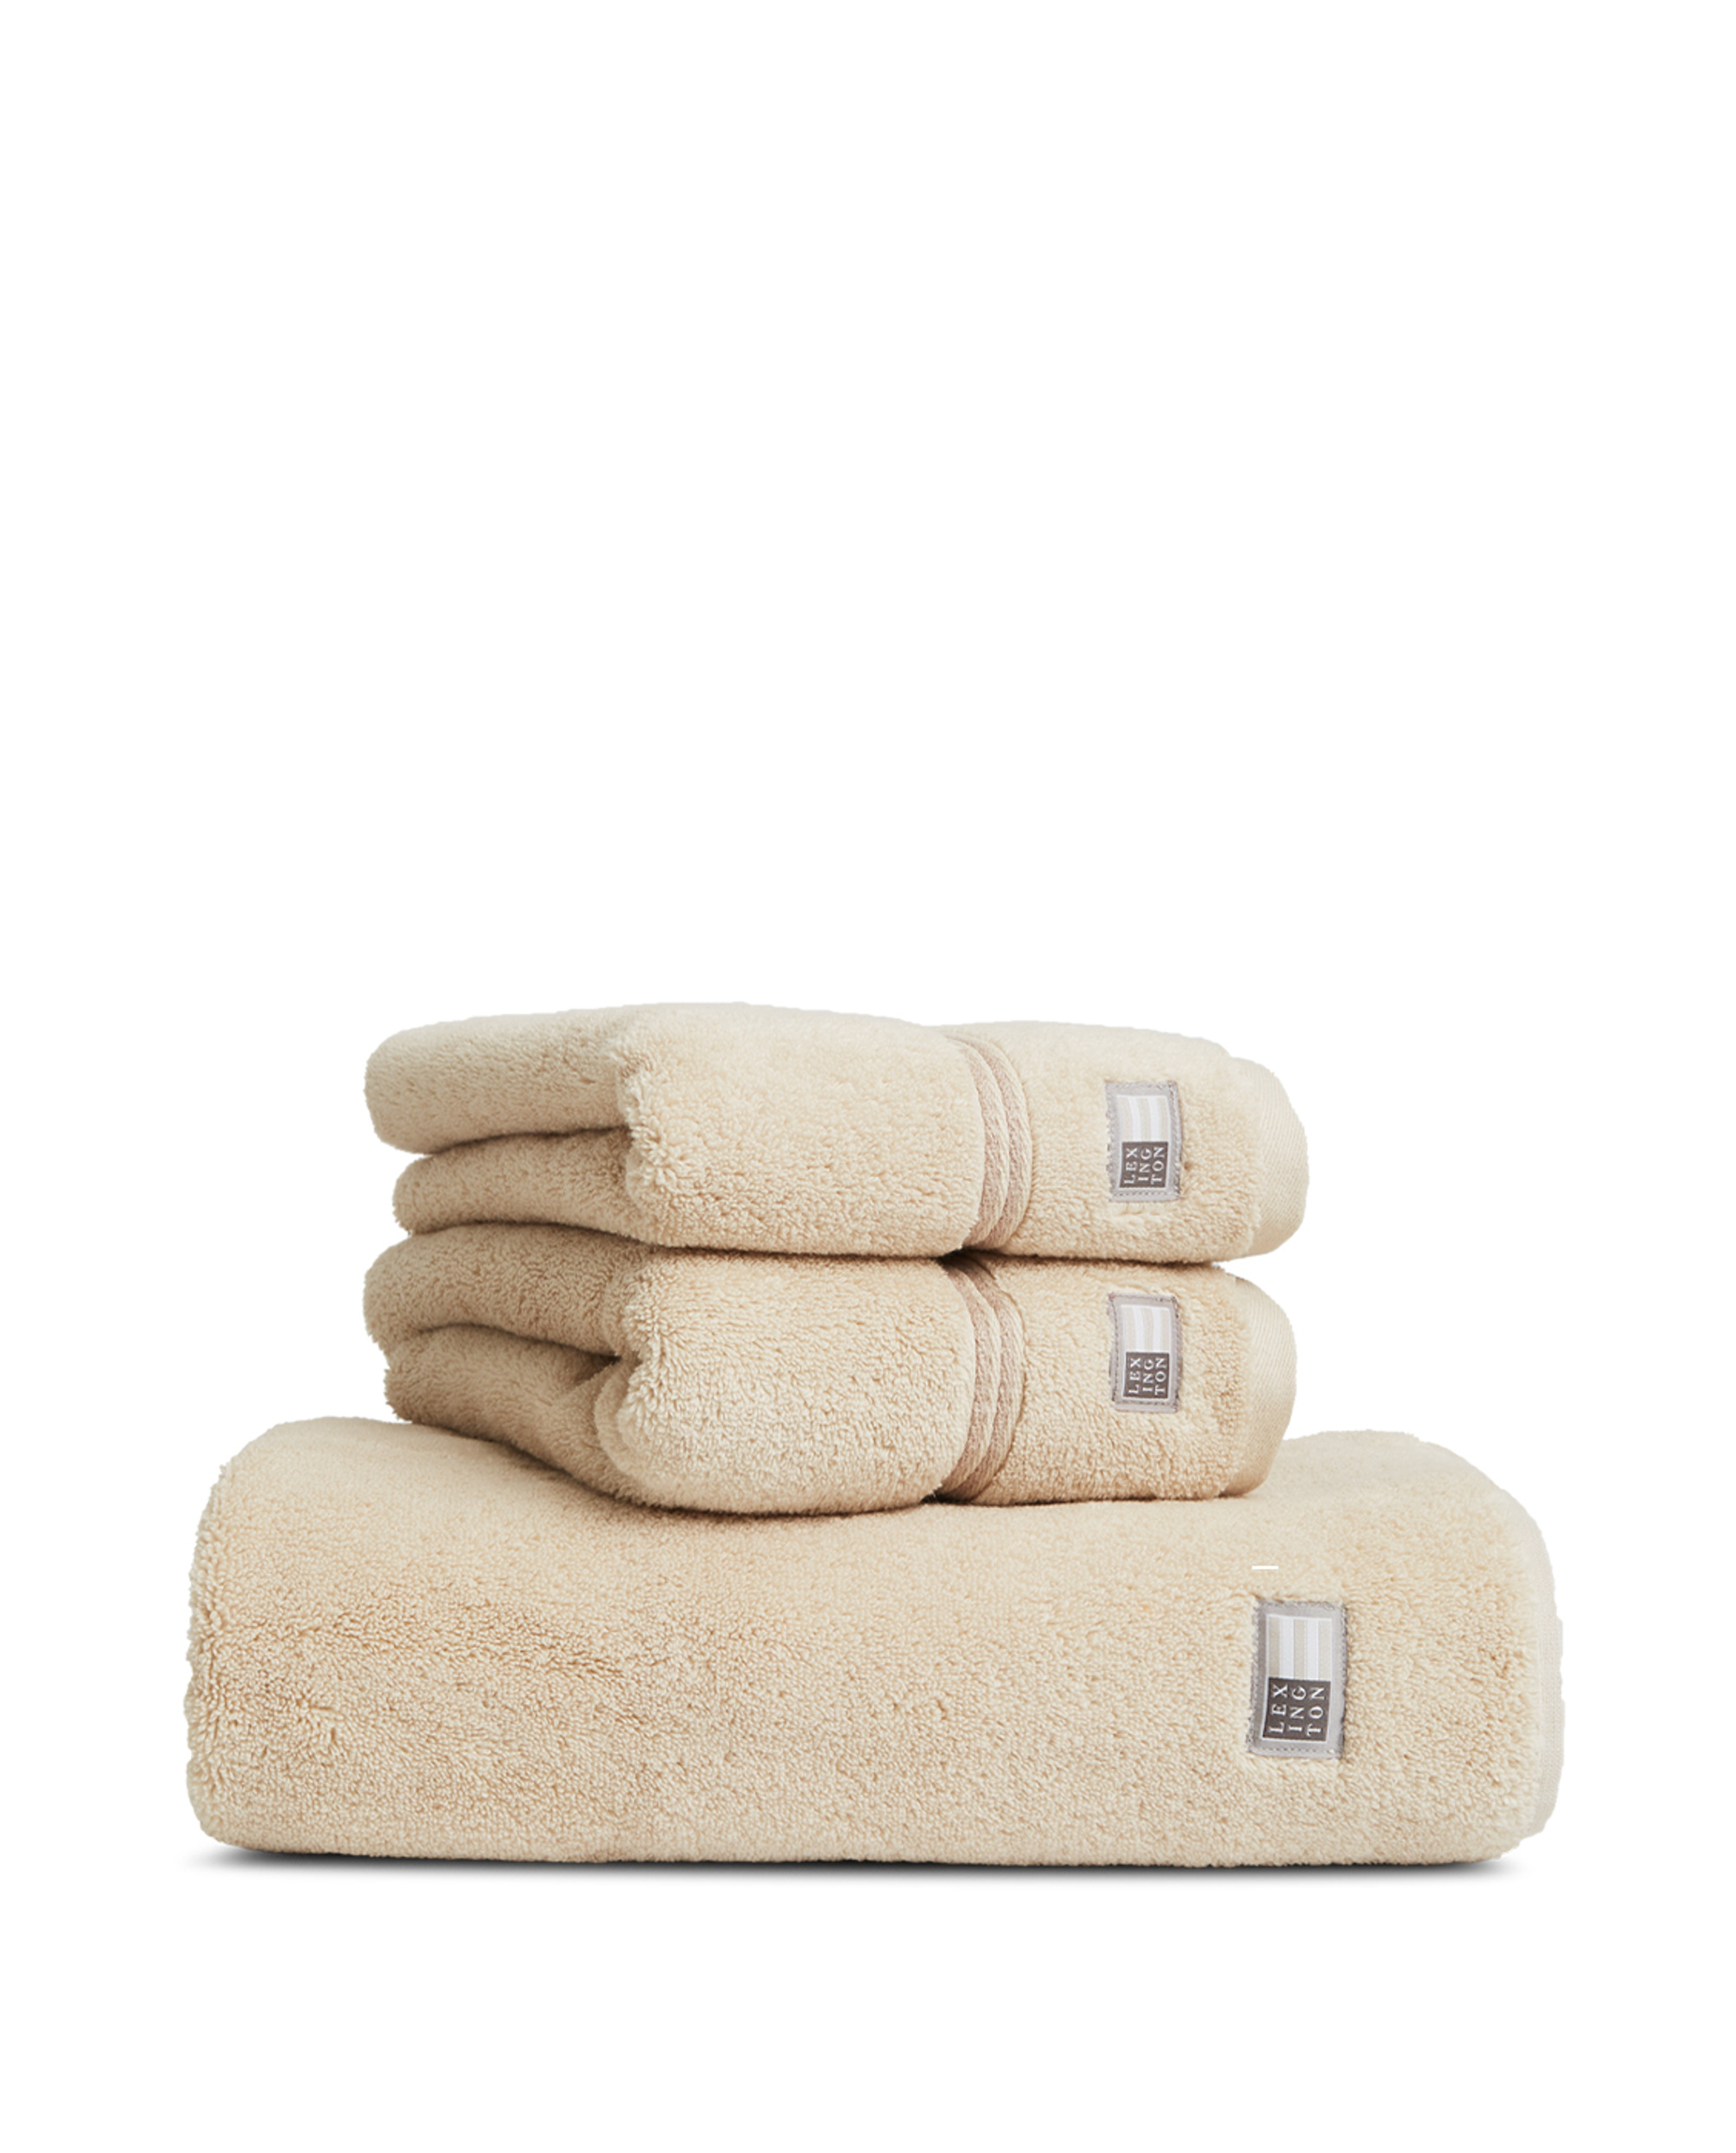 Lexington Hotel Towel Beige/Beige